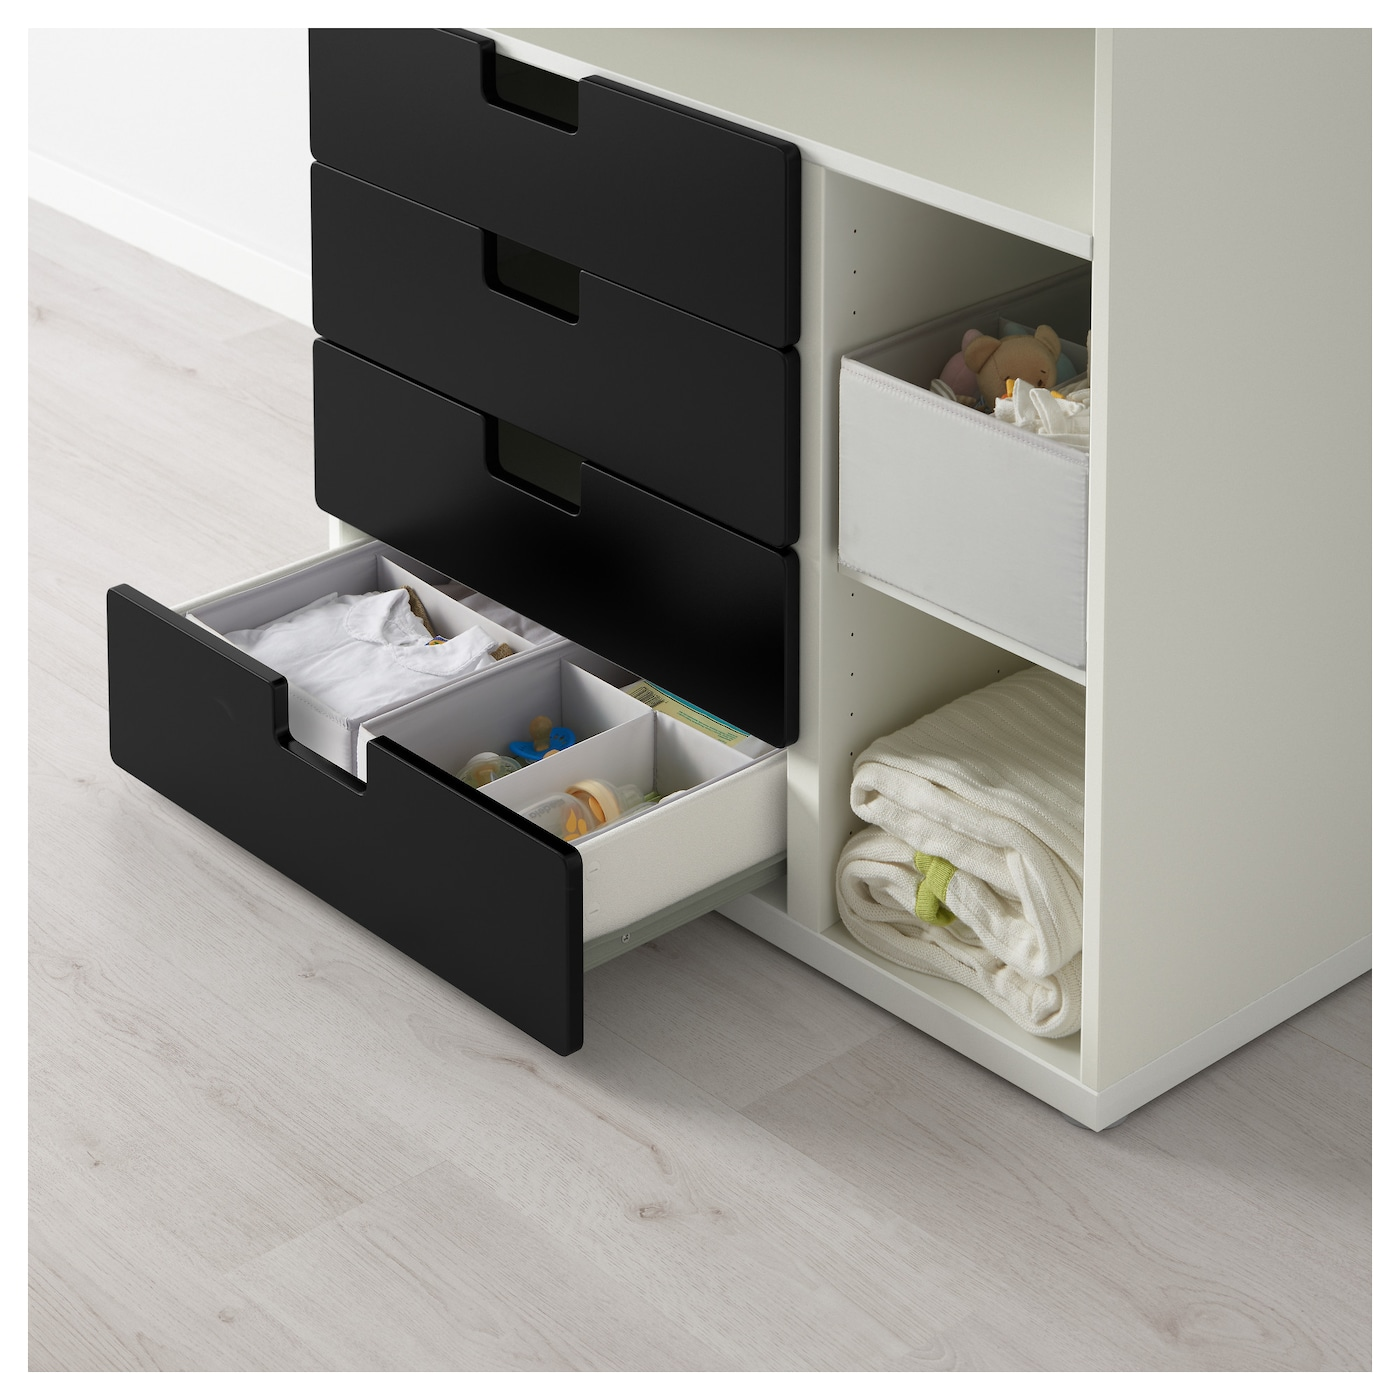 Trysil Ikea Bed Frame Review ~ Changing table with 4 drawers STUVA White black